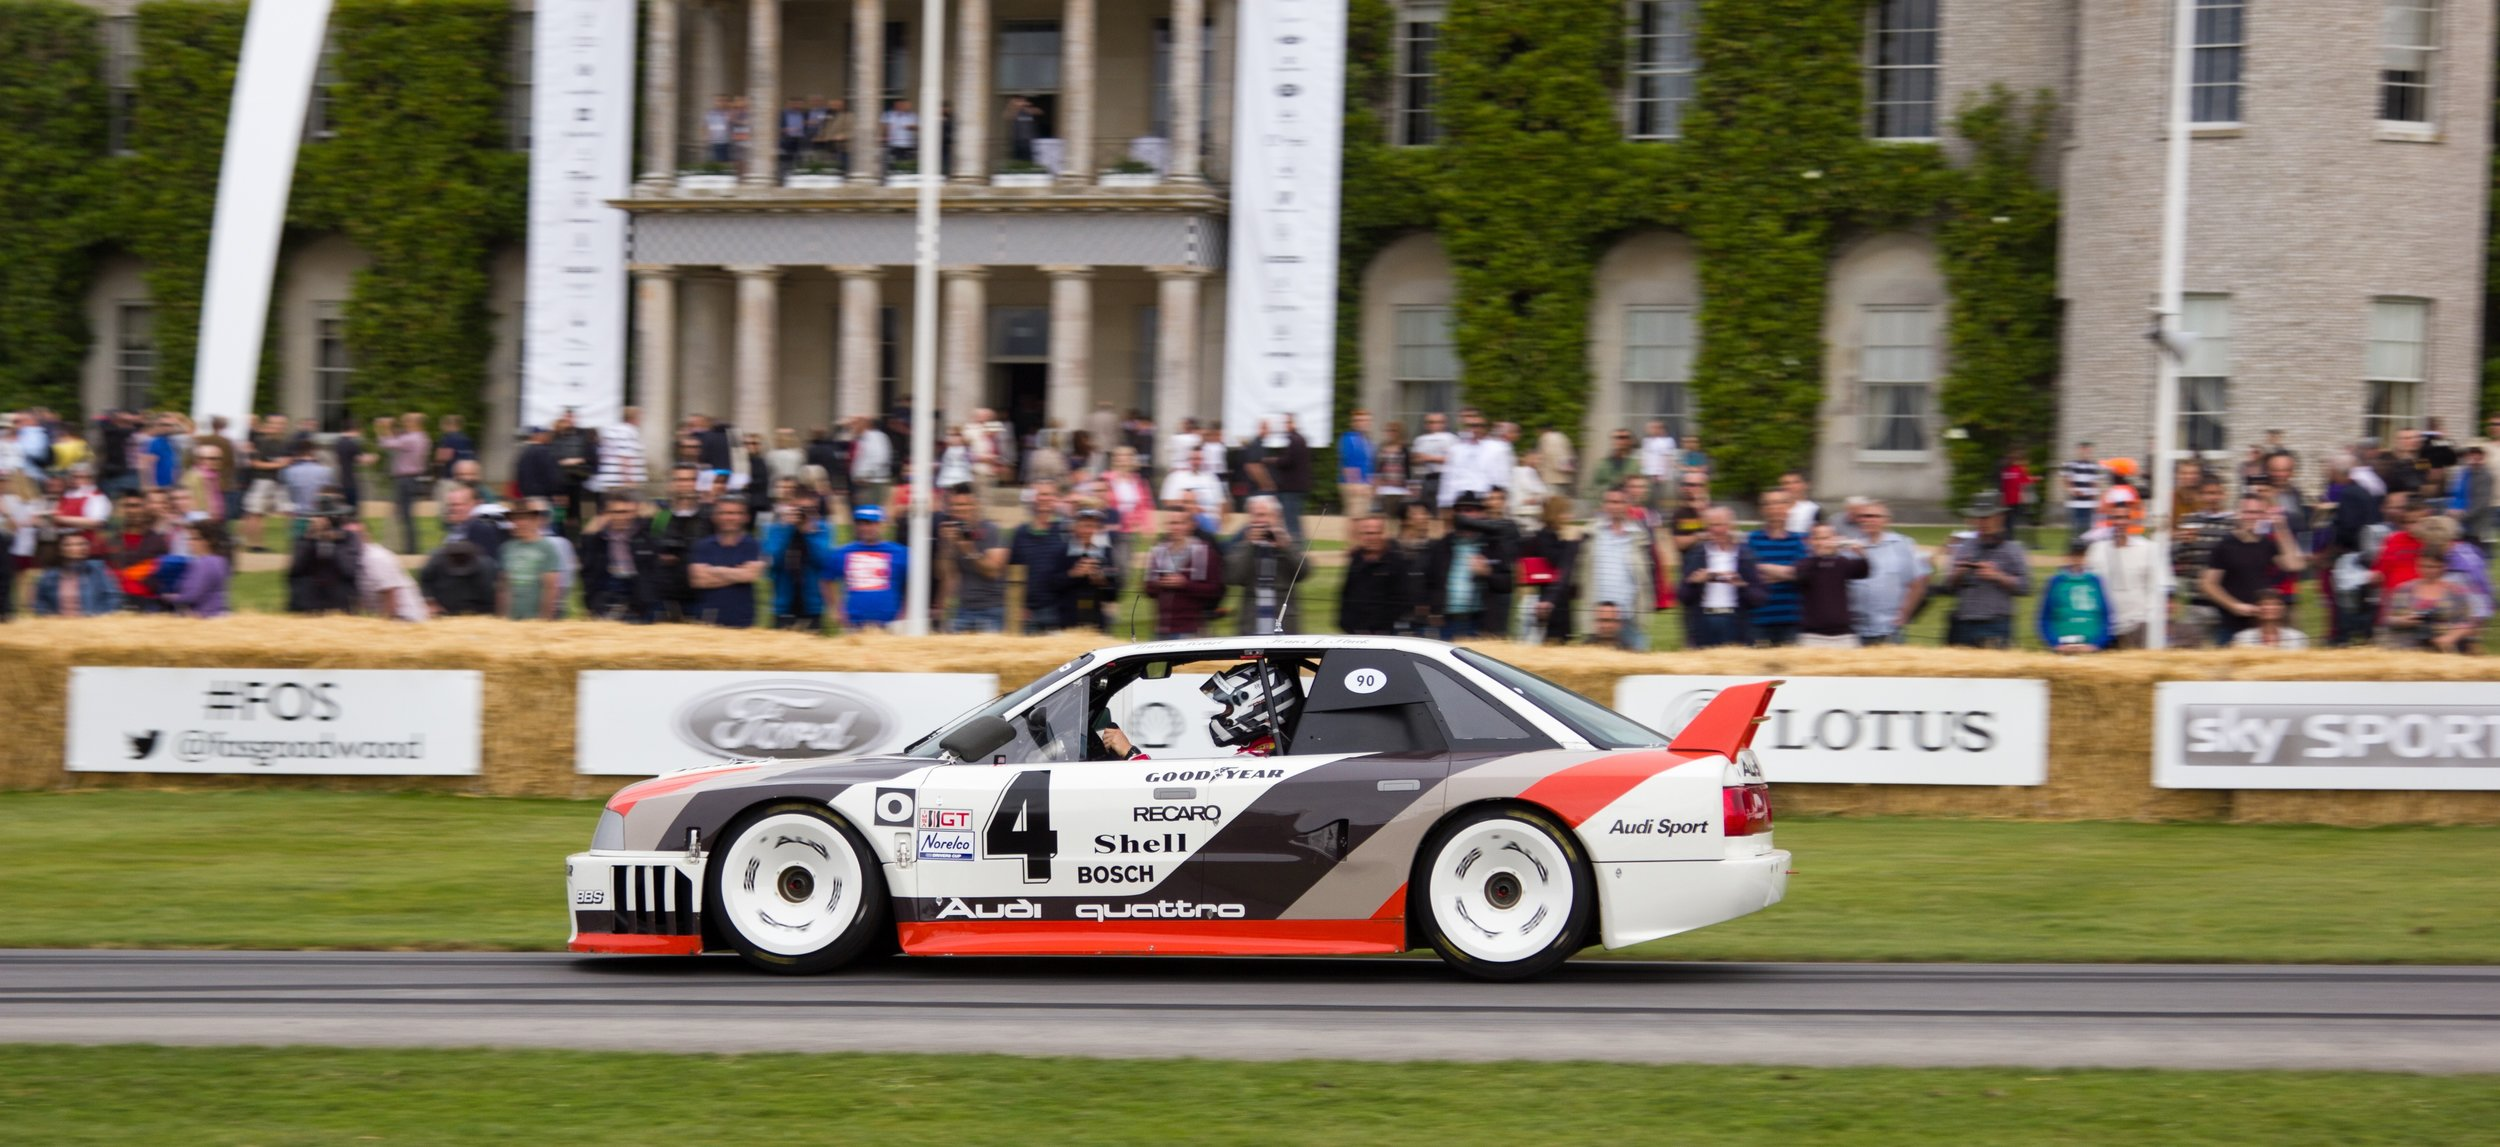 Audi_90_quattro_IMSA_GTO_at_Goodwood_2014_004.jpg